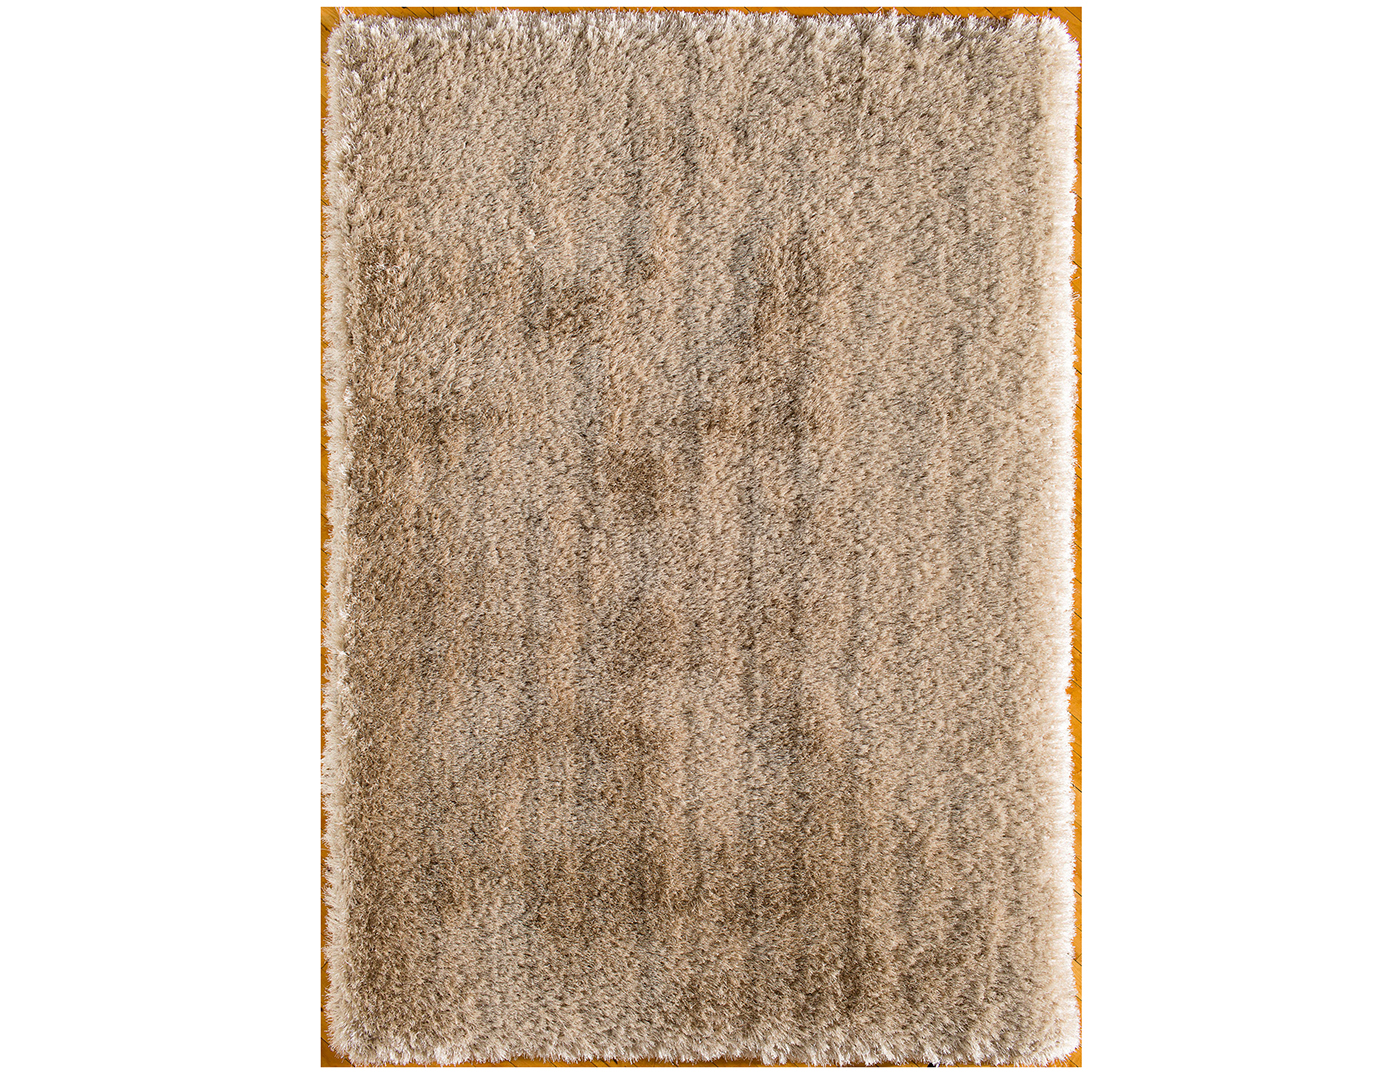 "Gold Ultimate Shag Area Rug 7'6""W x 9'6""L"